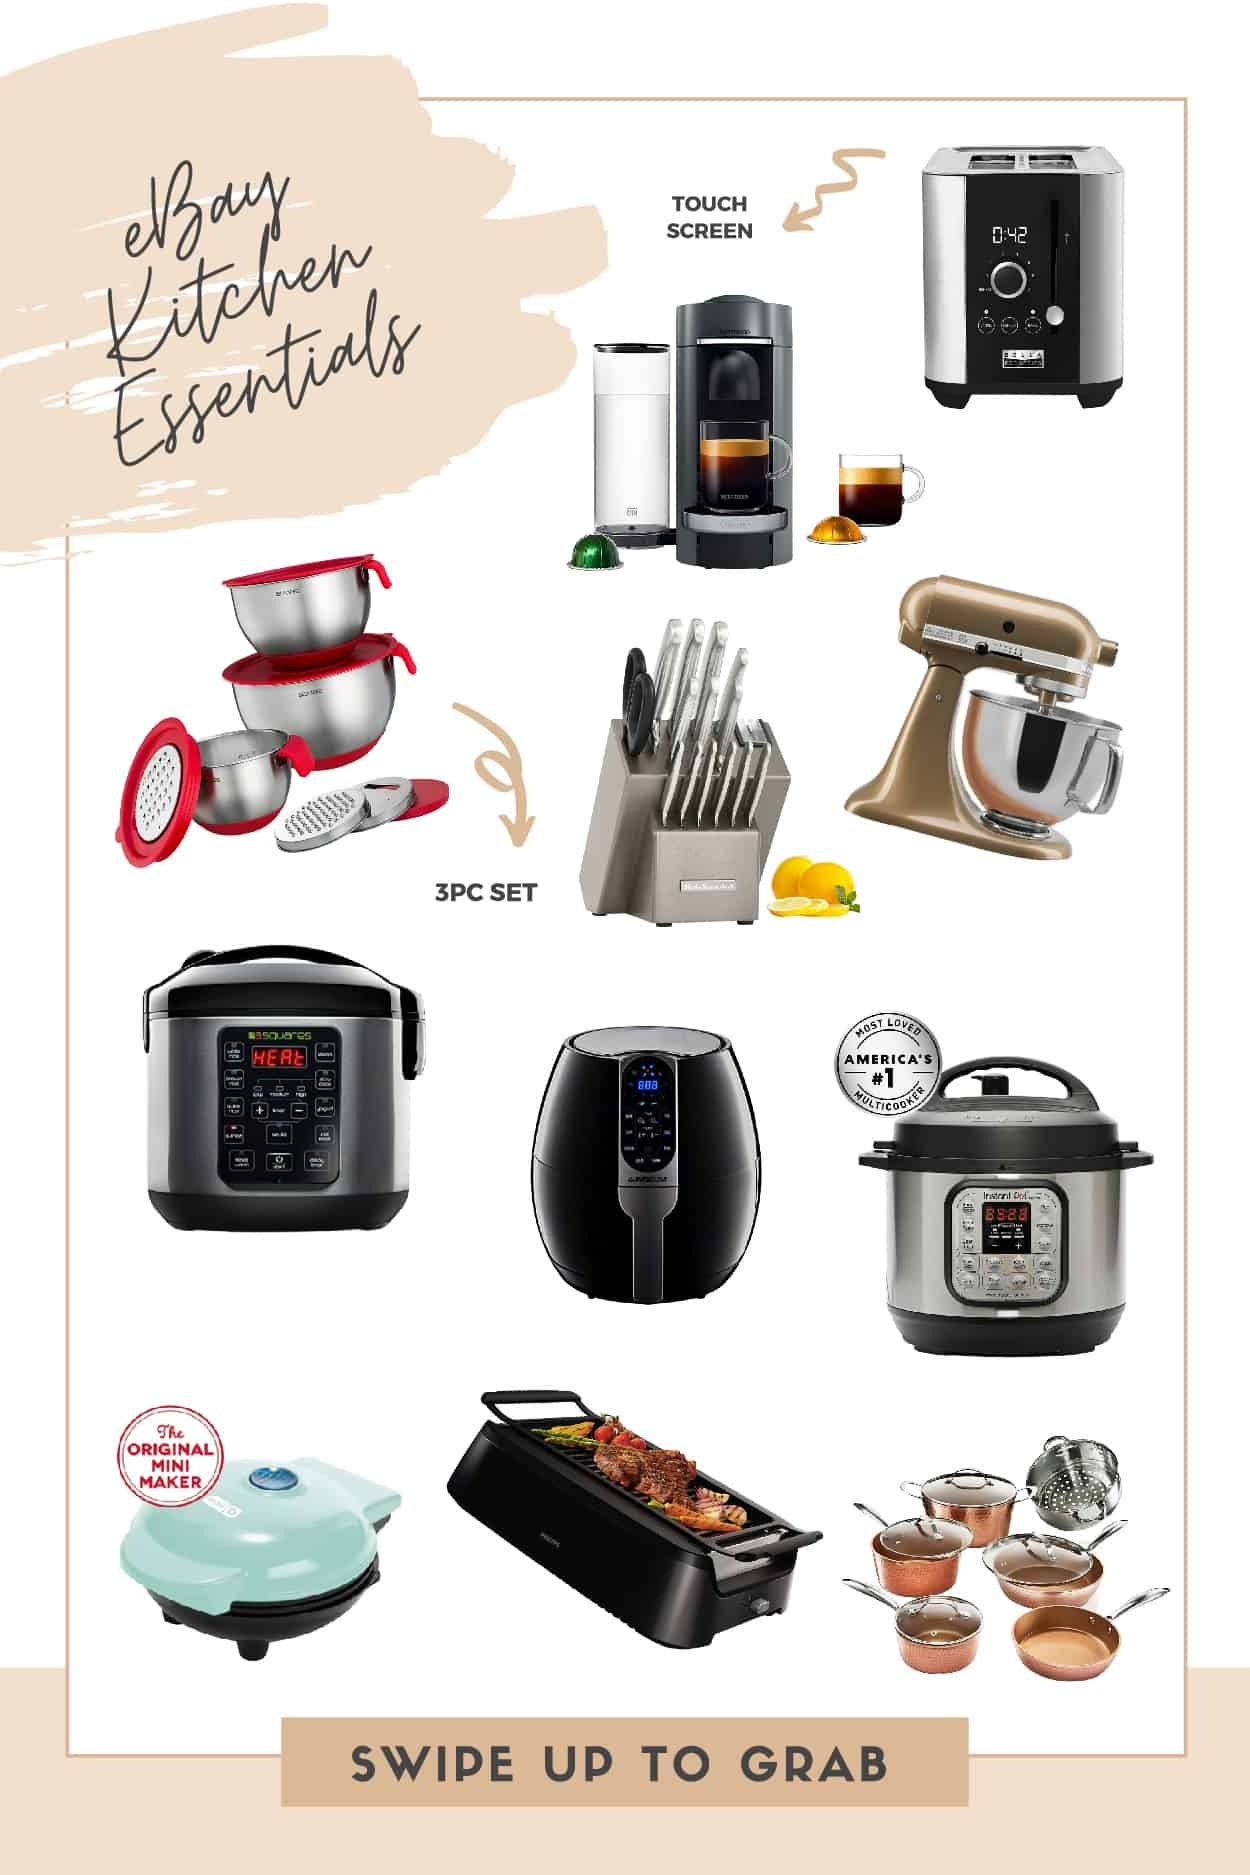 Thanksgiving Prep by popular Dallas lifestyle blog, Glamorous Versatility: collage image of a Insta Pot, mini waffle iron, copper pots, gold Kitchen Aid mixer, Coffee maker, Knife set, rice cooker, metal mixing bowls, and touch screen toaster.